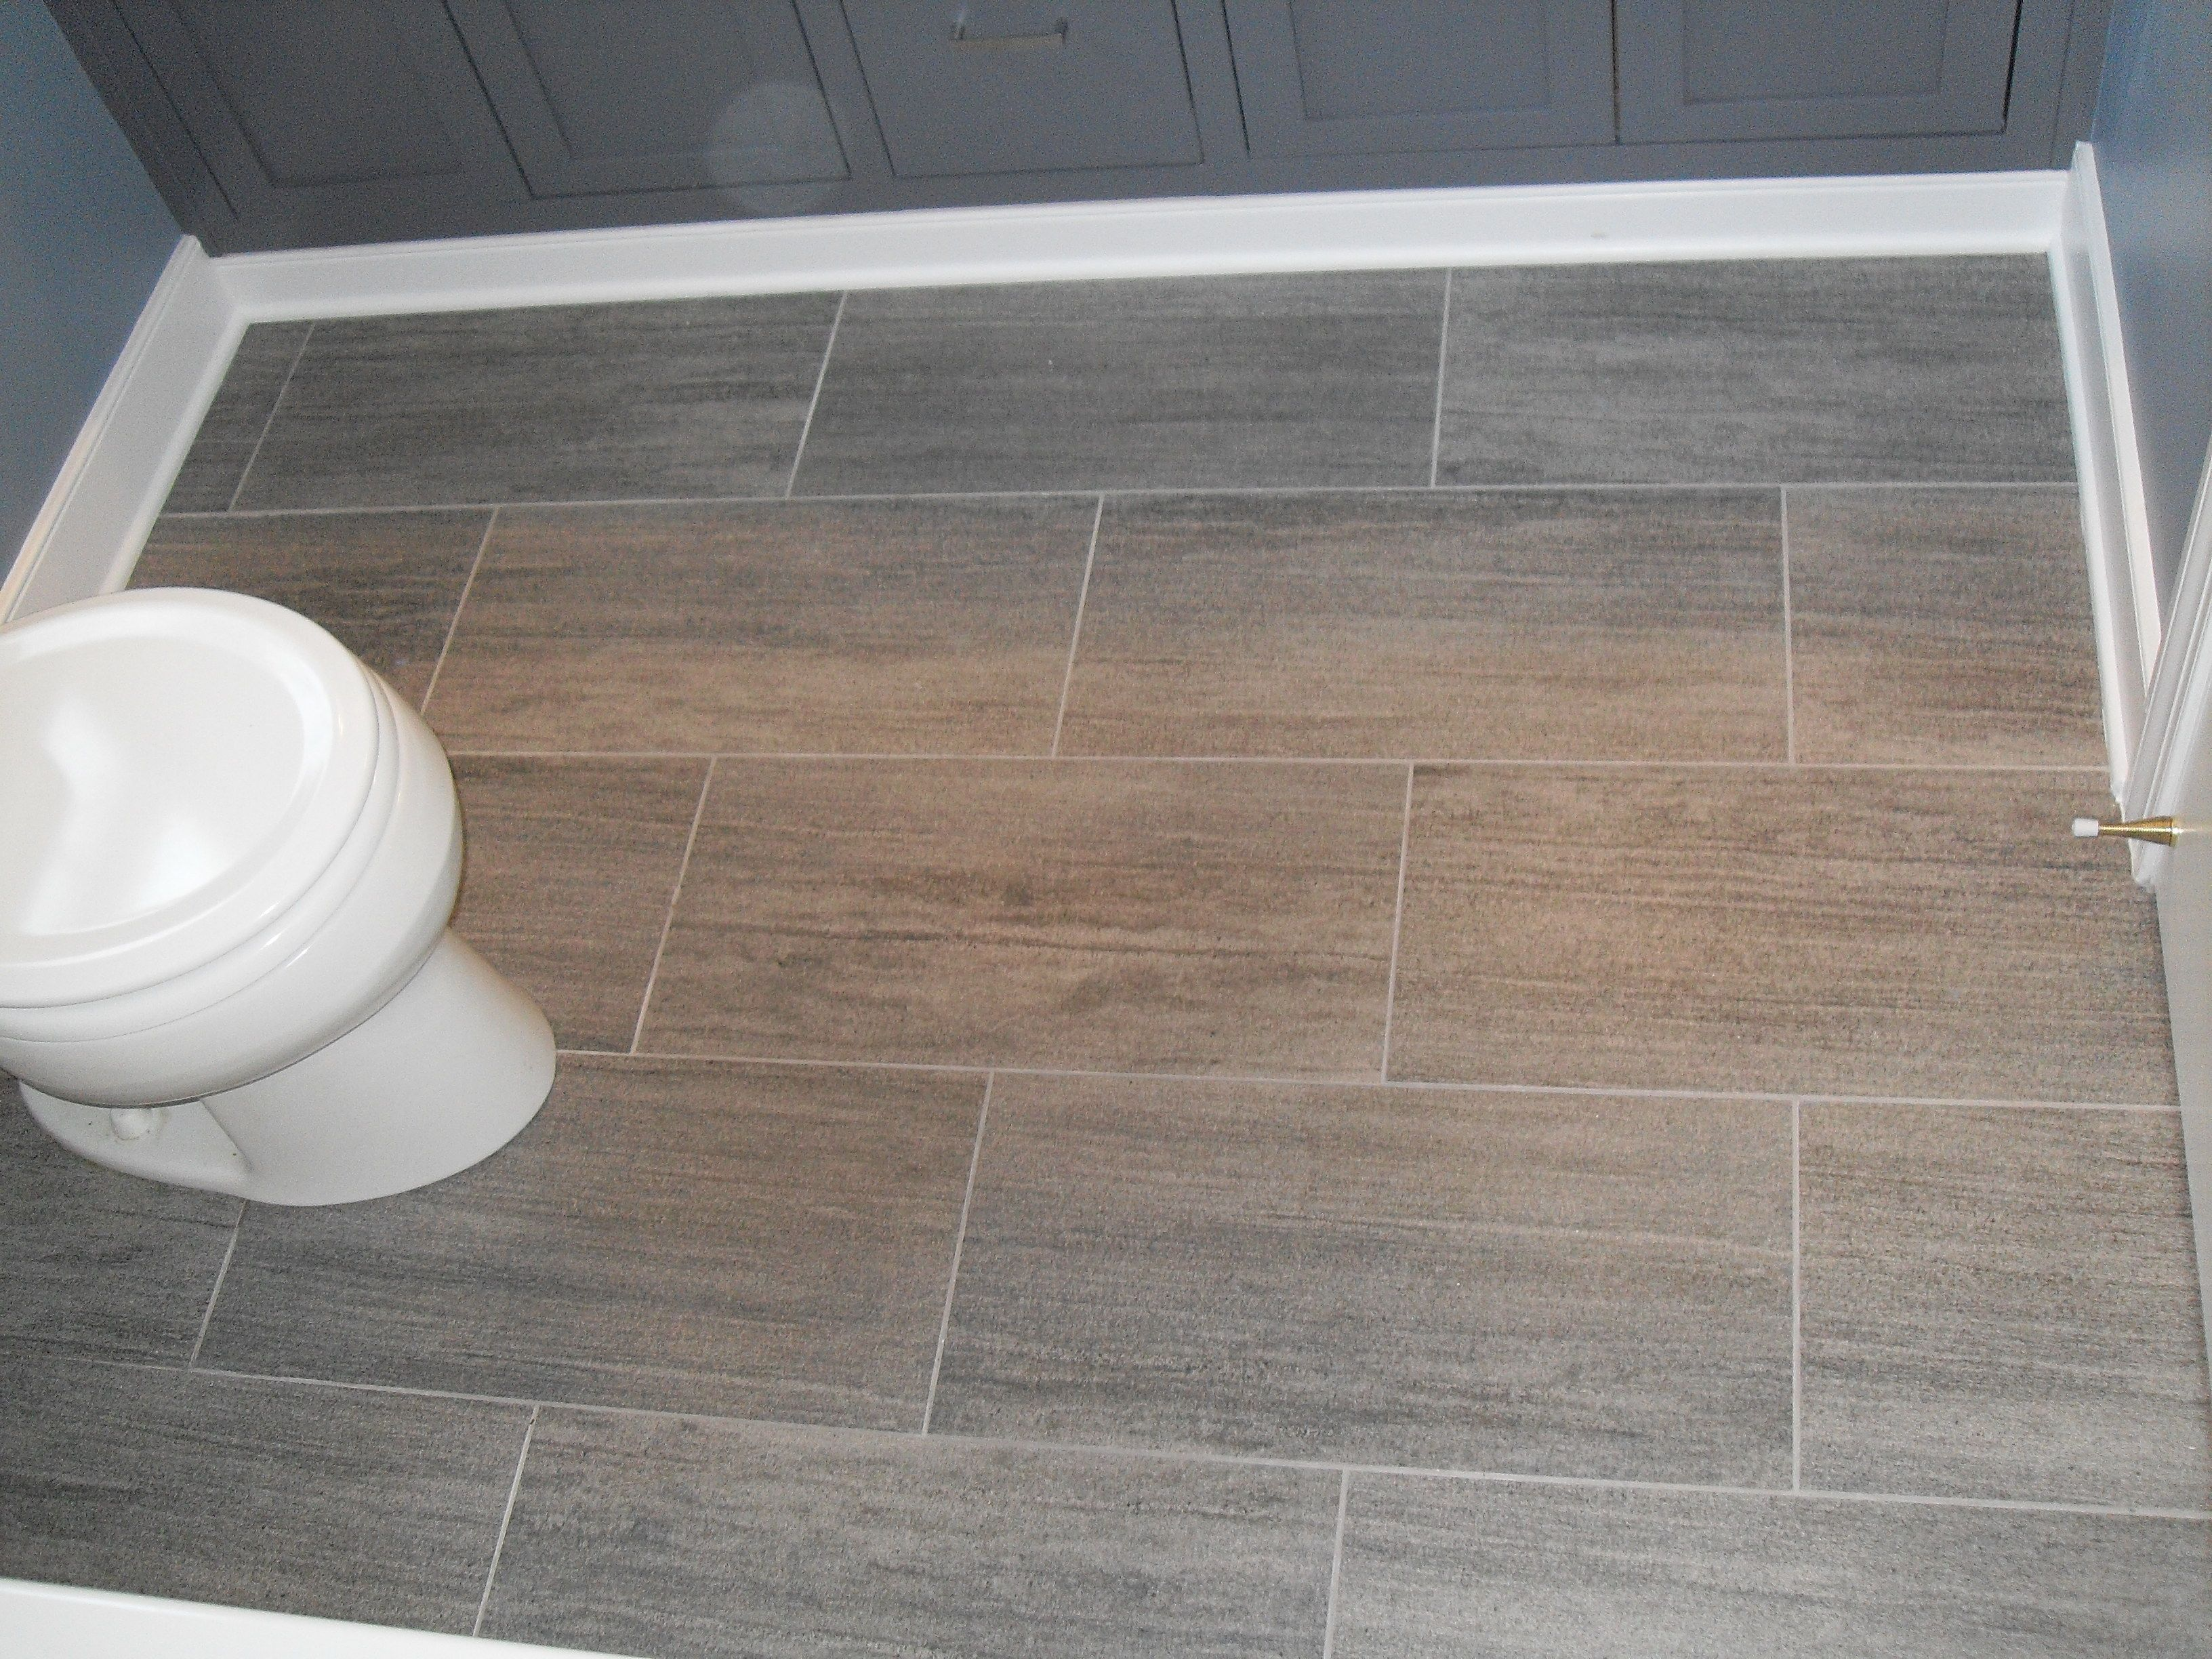 Easy To Keep Clean Similar To Drift Wood In Tone Large Tile For - Inexpensive bathroom flooring